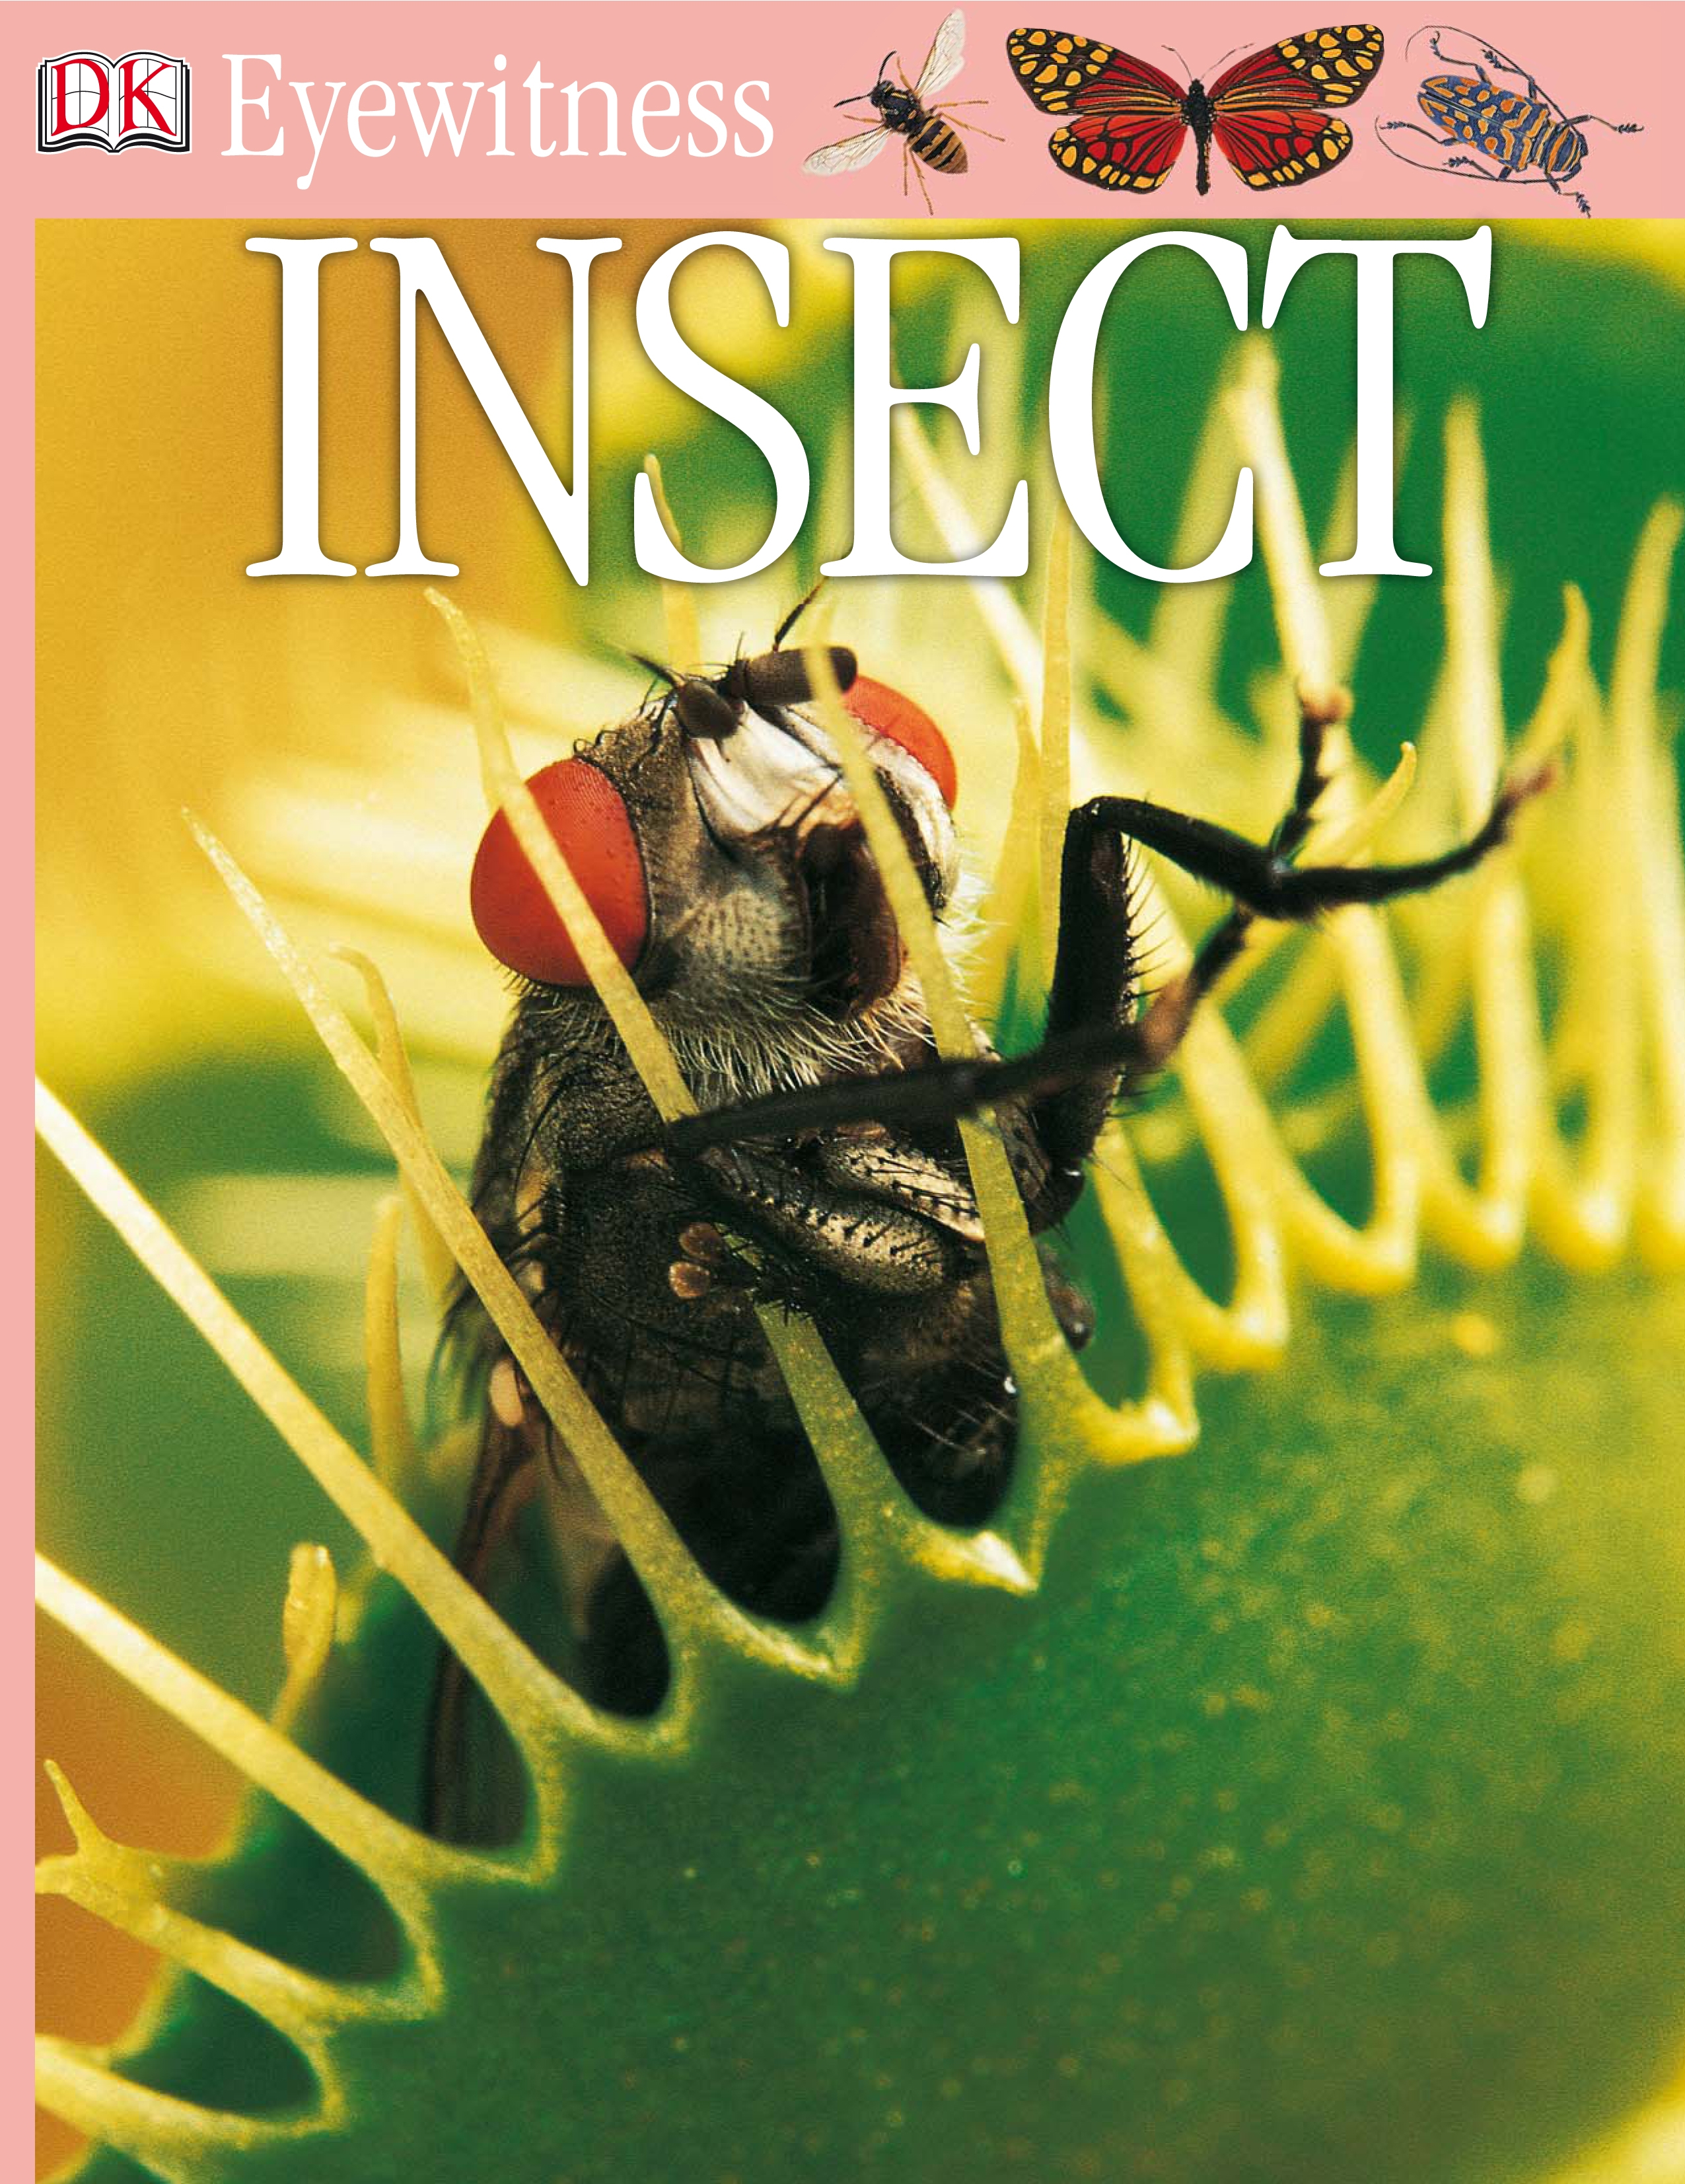 Cover Image of DK Eyewitness Books: Insect